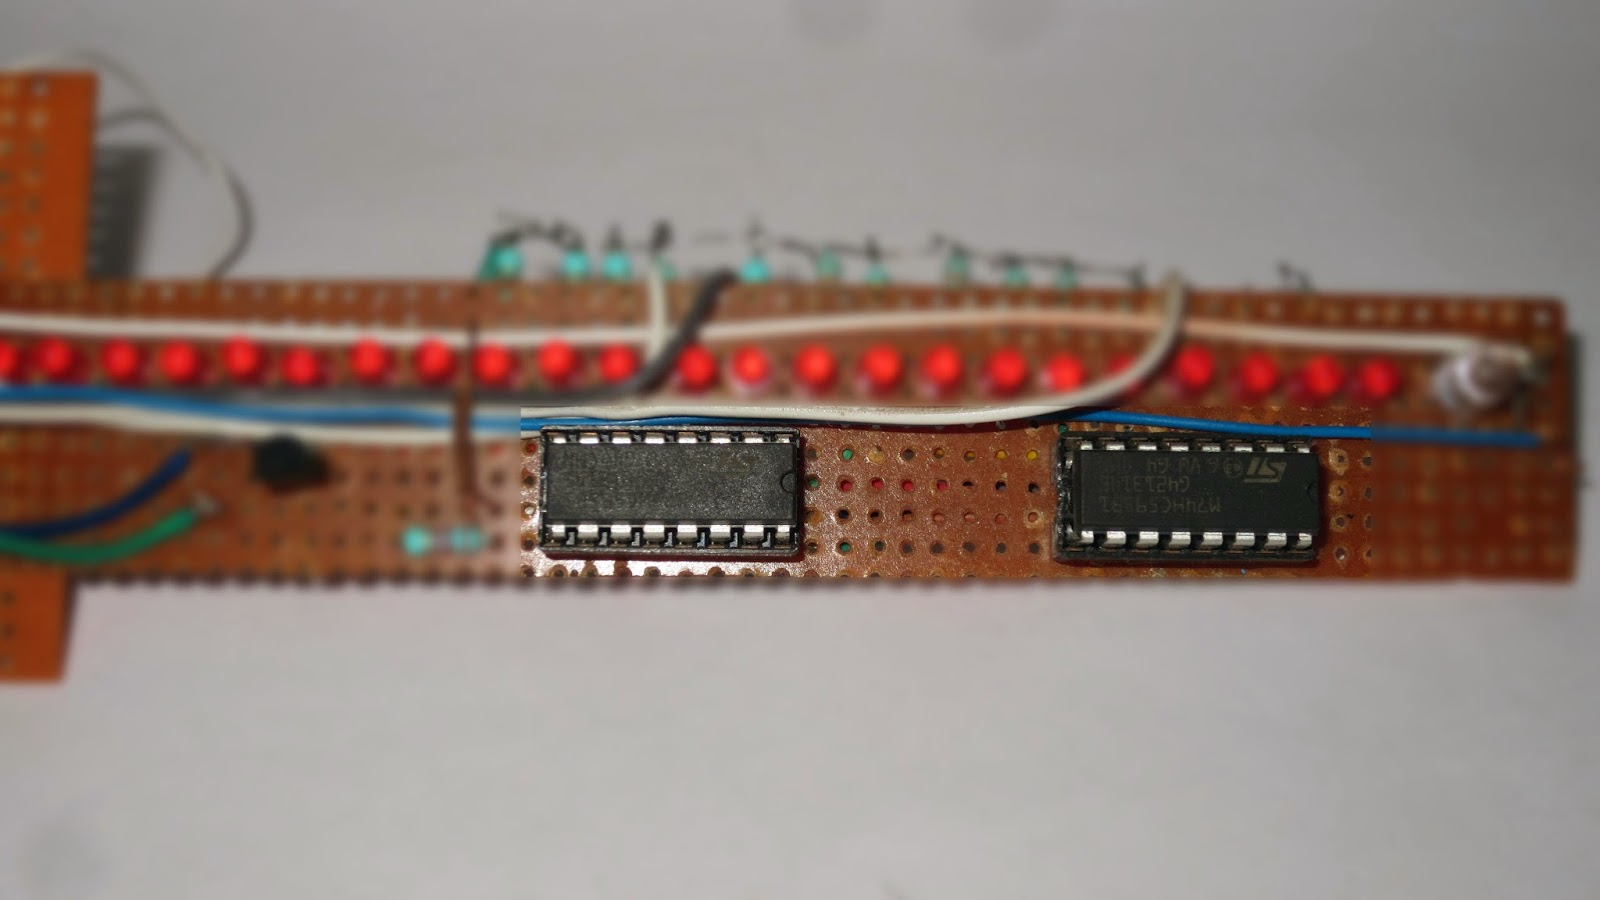 Arduino Electronics Make A Propeller Clock Using Ledclockcircuitboard2jpg Add Two Shift Register In The Circuit